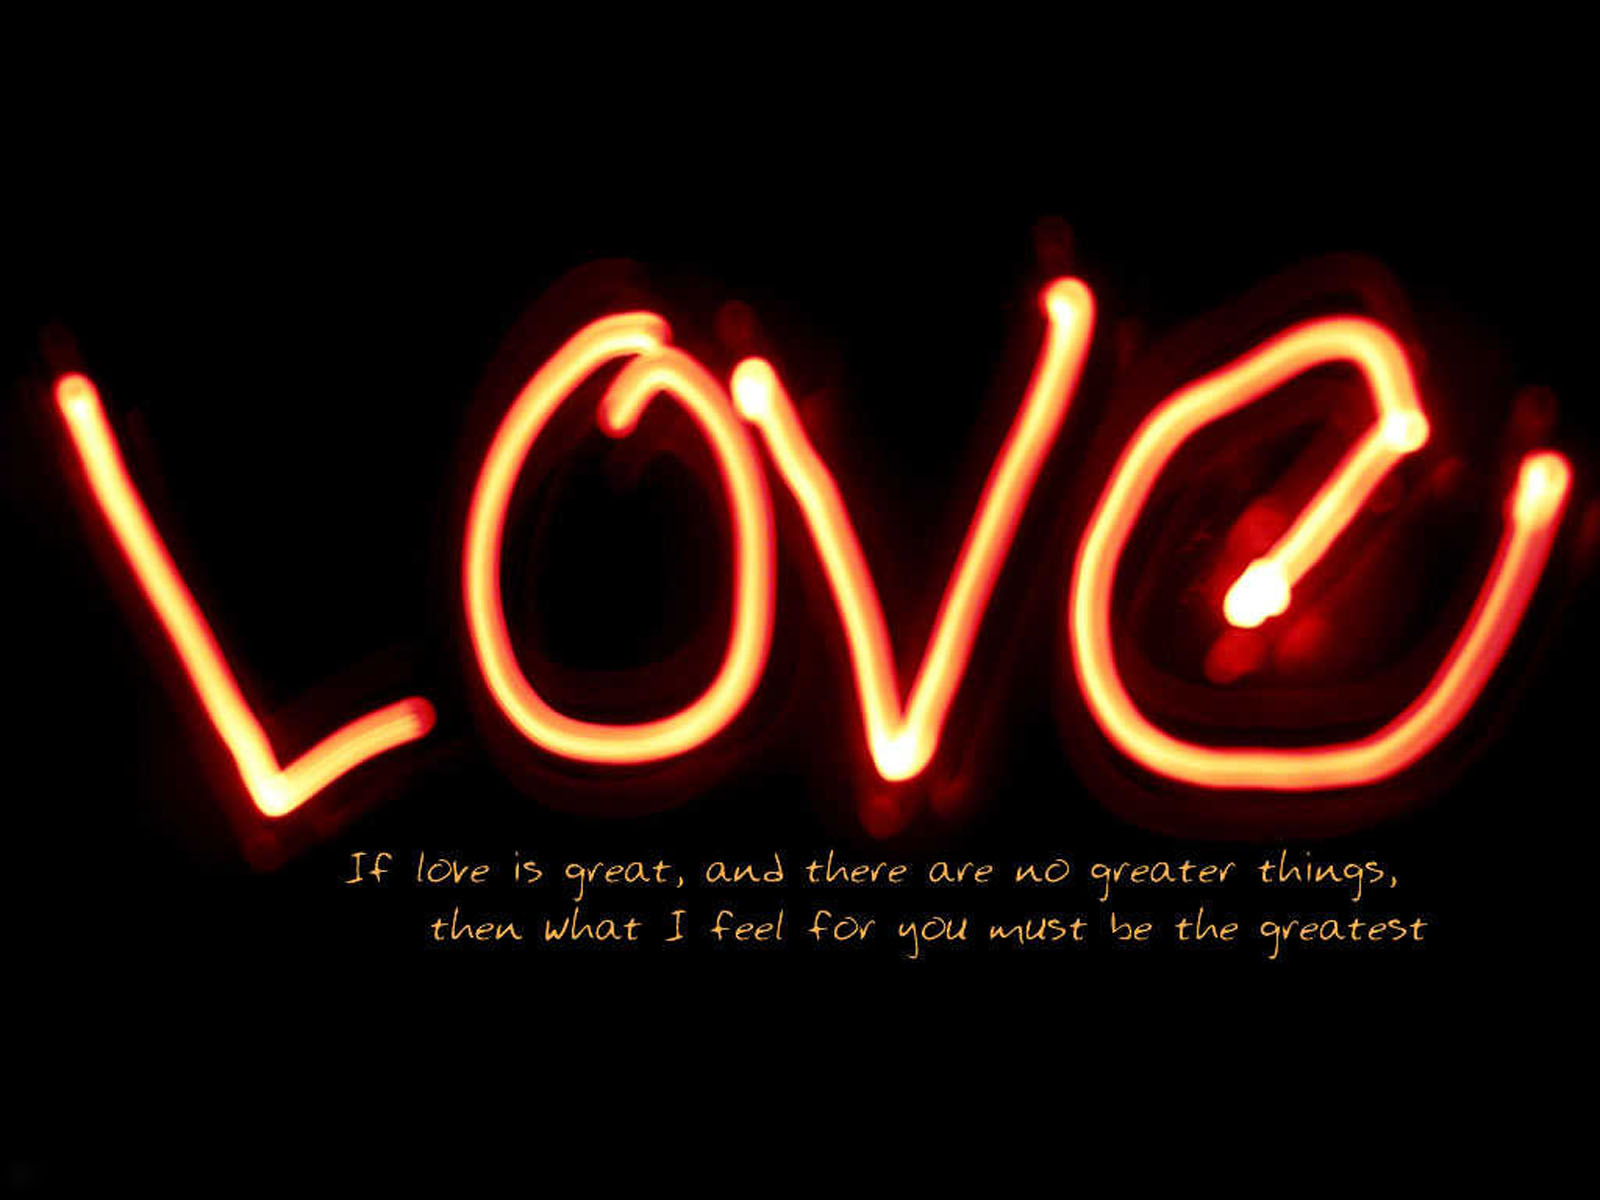 http://4.bp.blogspot.com/-KeGep1VfWS8/T4WmgGErOII/AAAAAAAACAk/T0xKcYmS-i8/s1600/Love%20Quotes%20Wallpapers%203.jpg